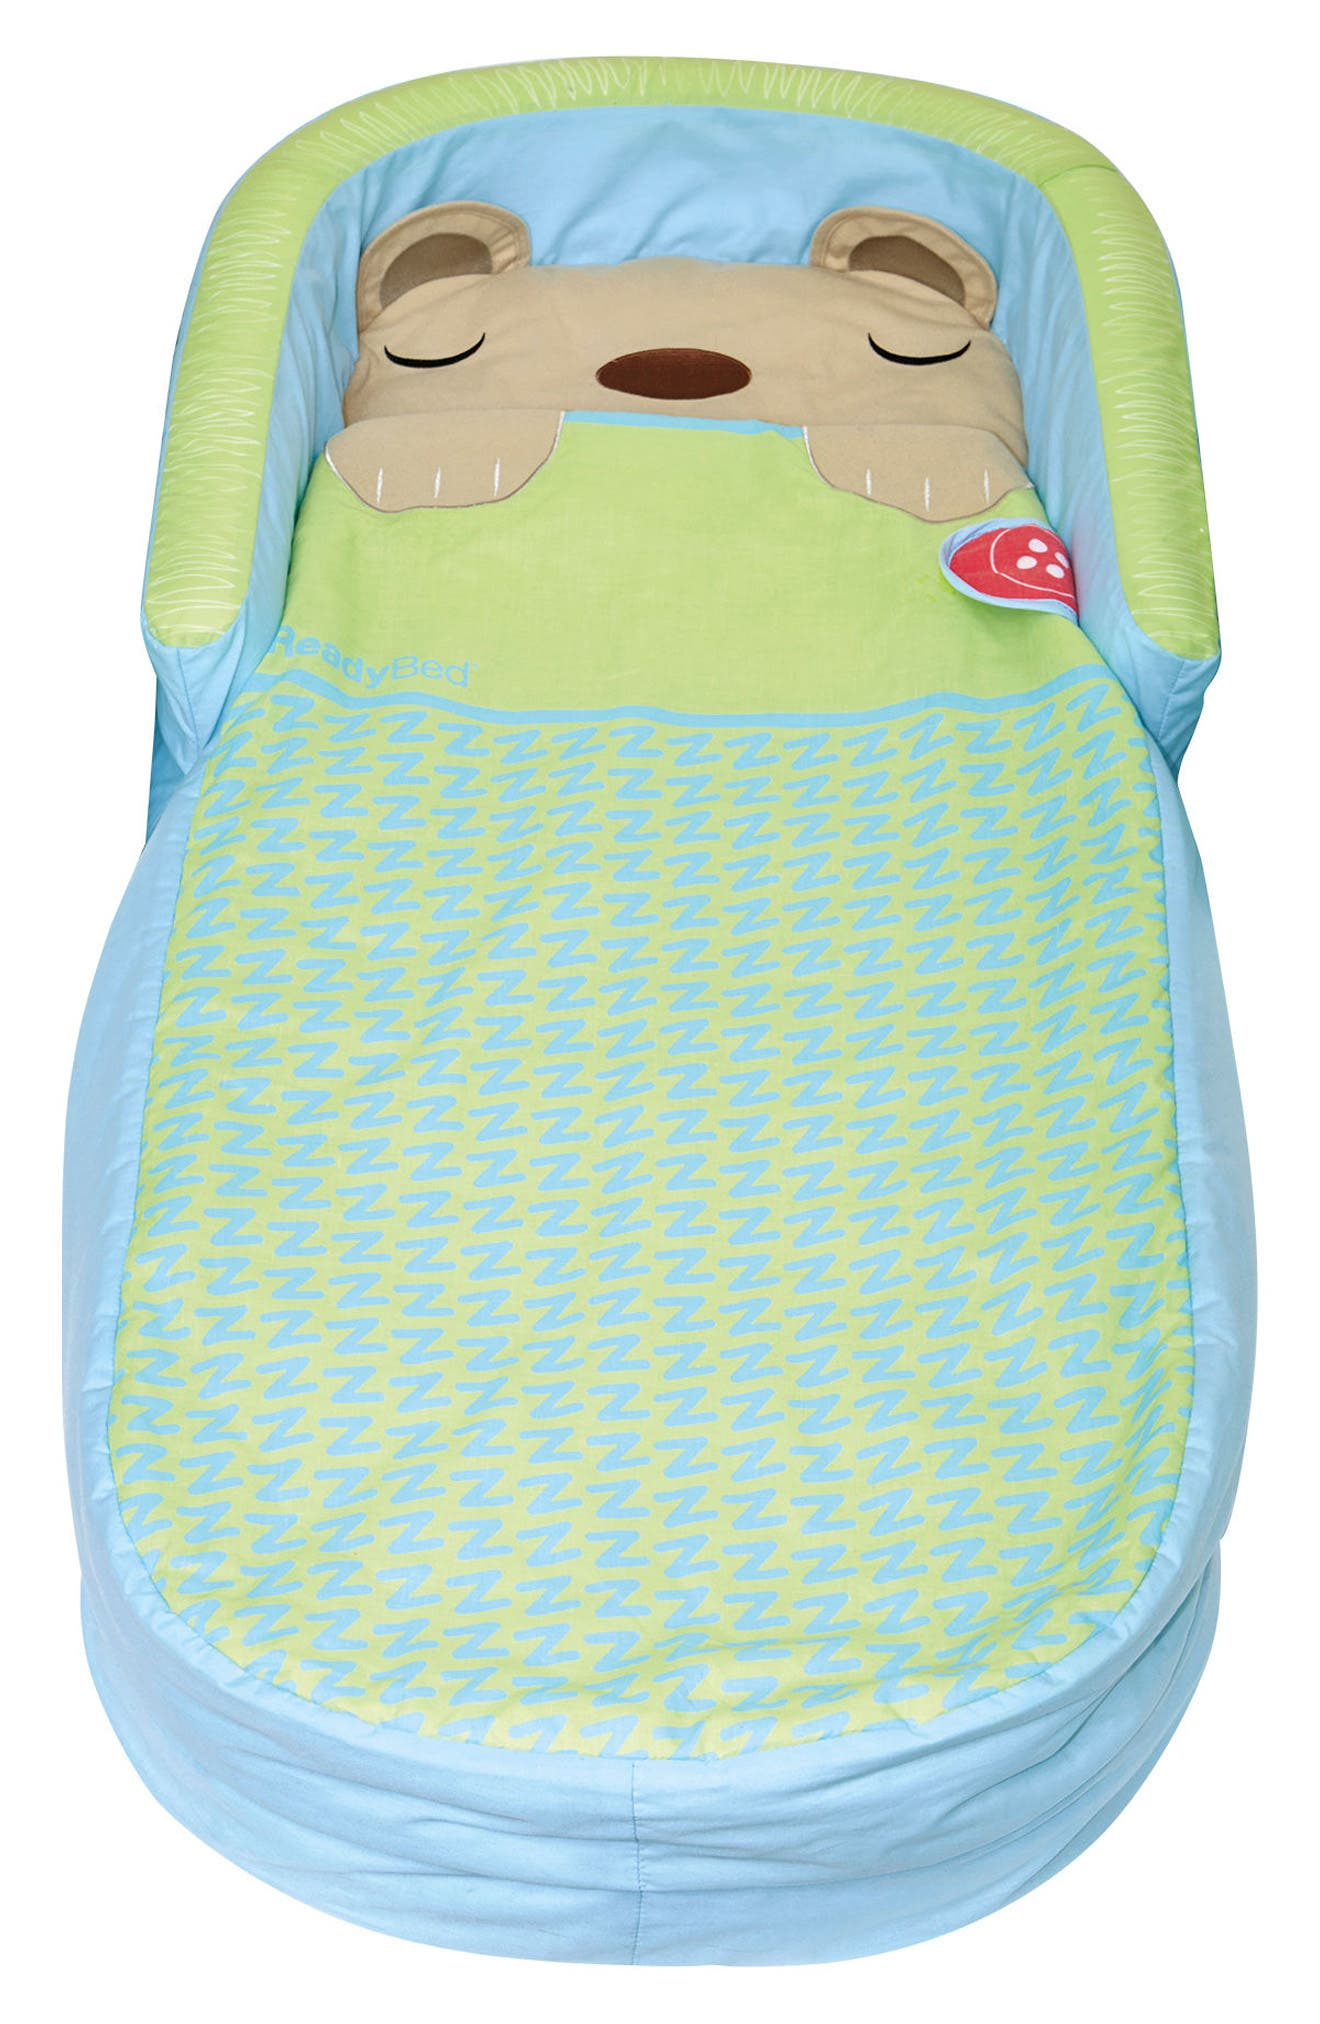 Main Image - Diggin Bear Hug My First Ready Bed Inflatable Bed & Cover Set